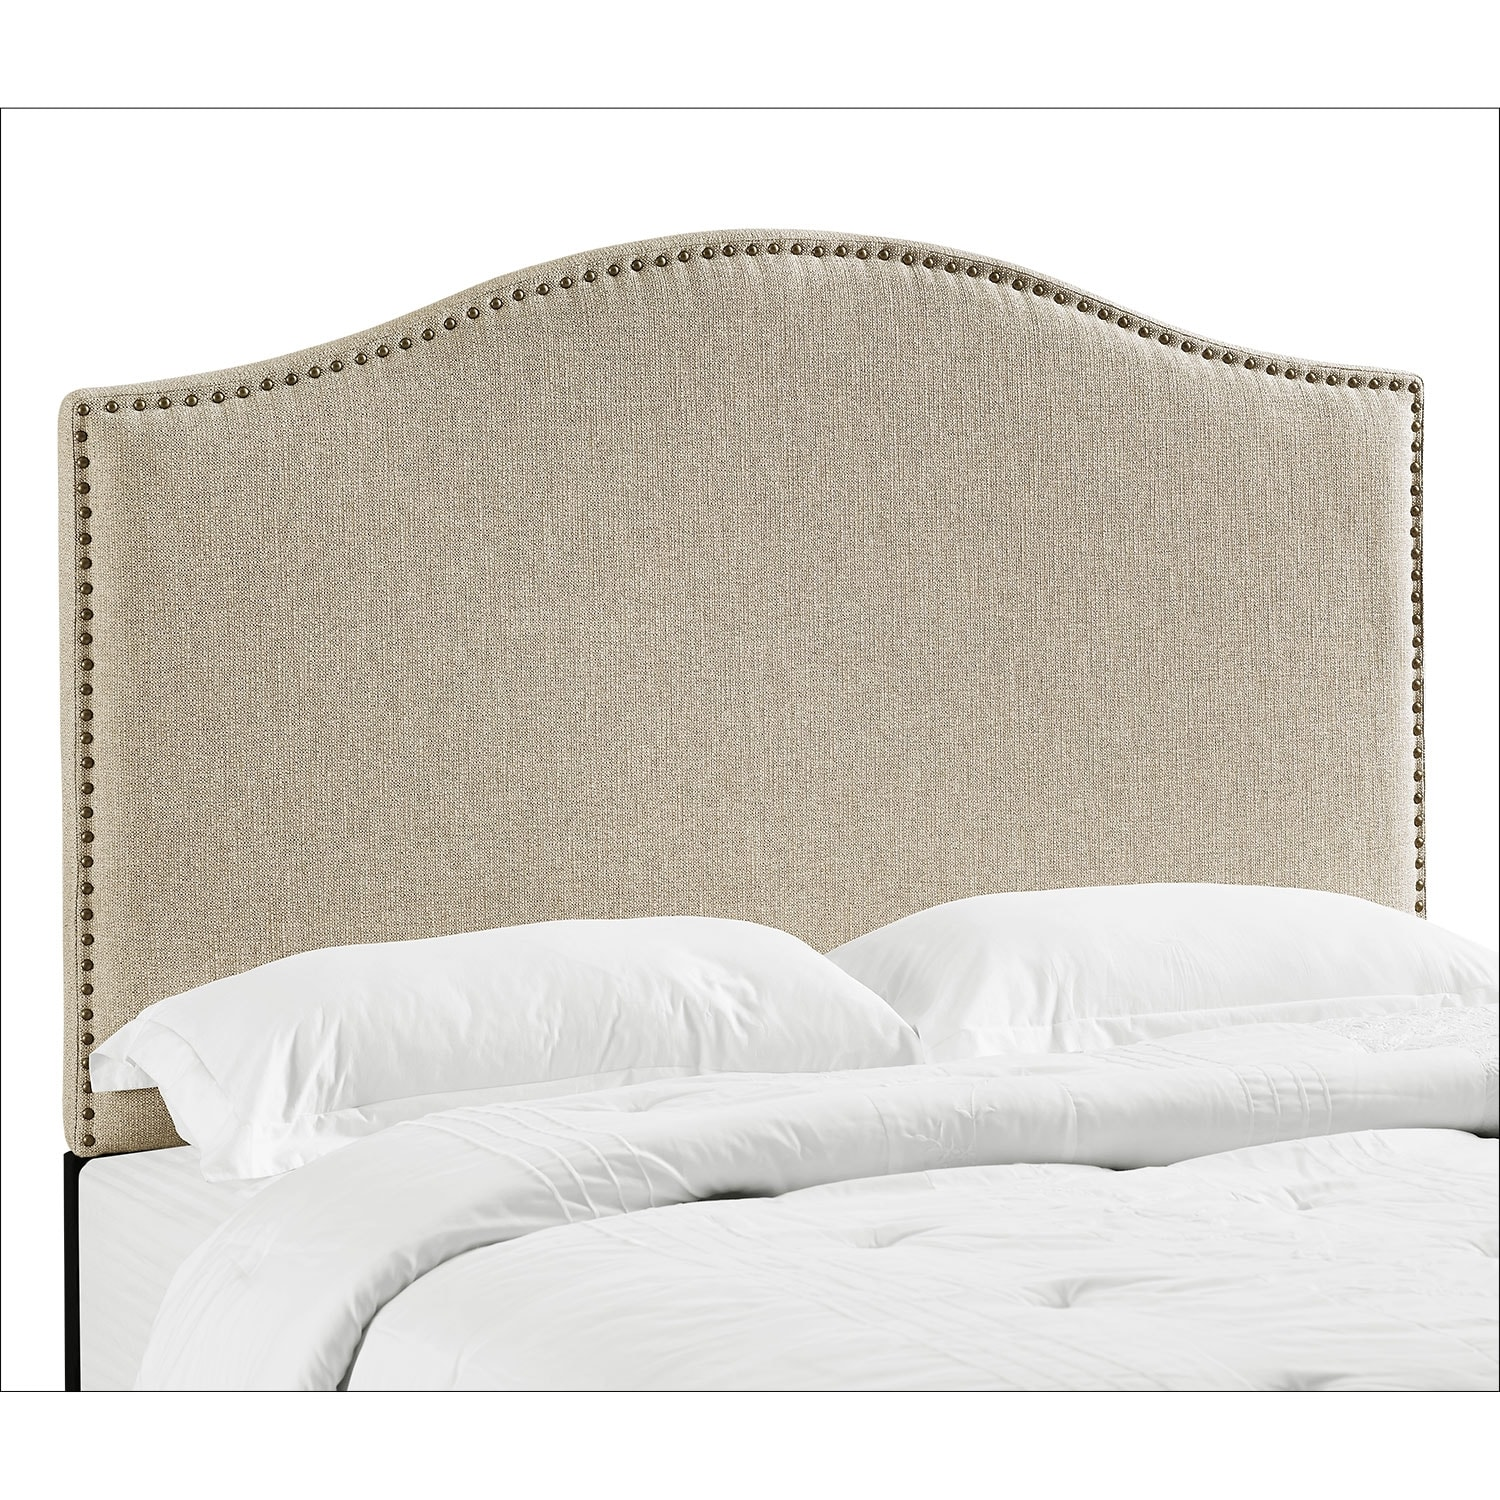 Bedroom Furniture - Wyatt Full/Queen Headboard